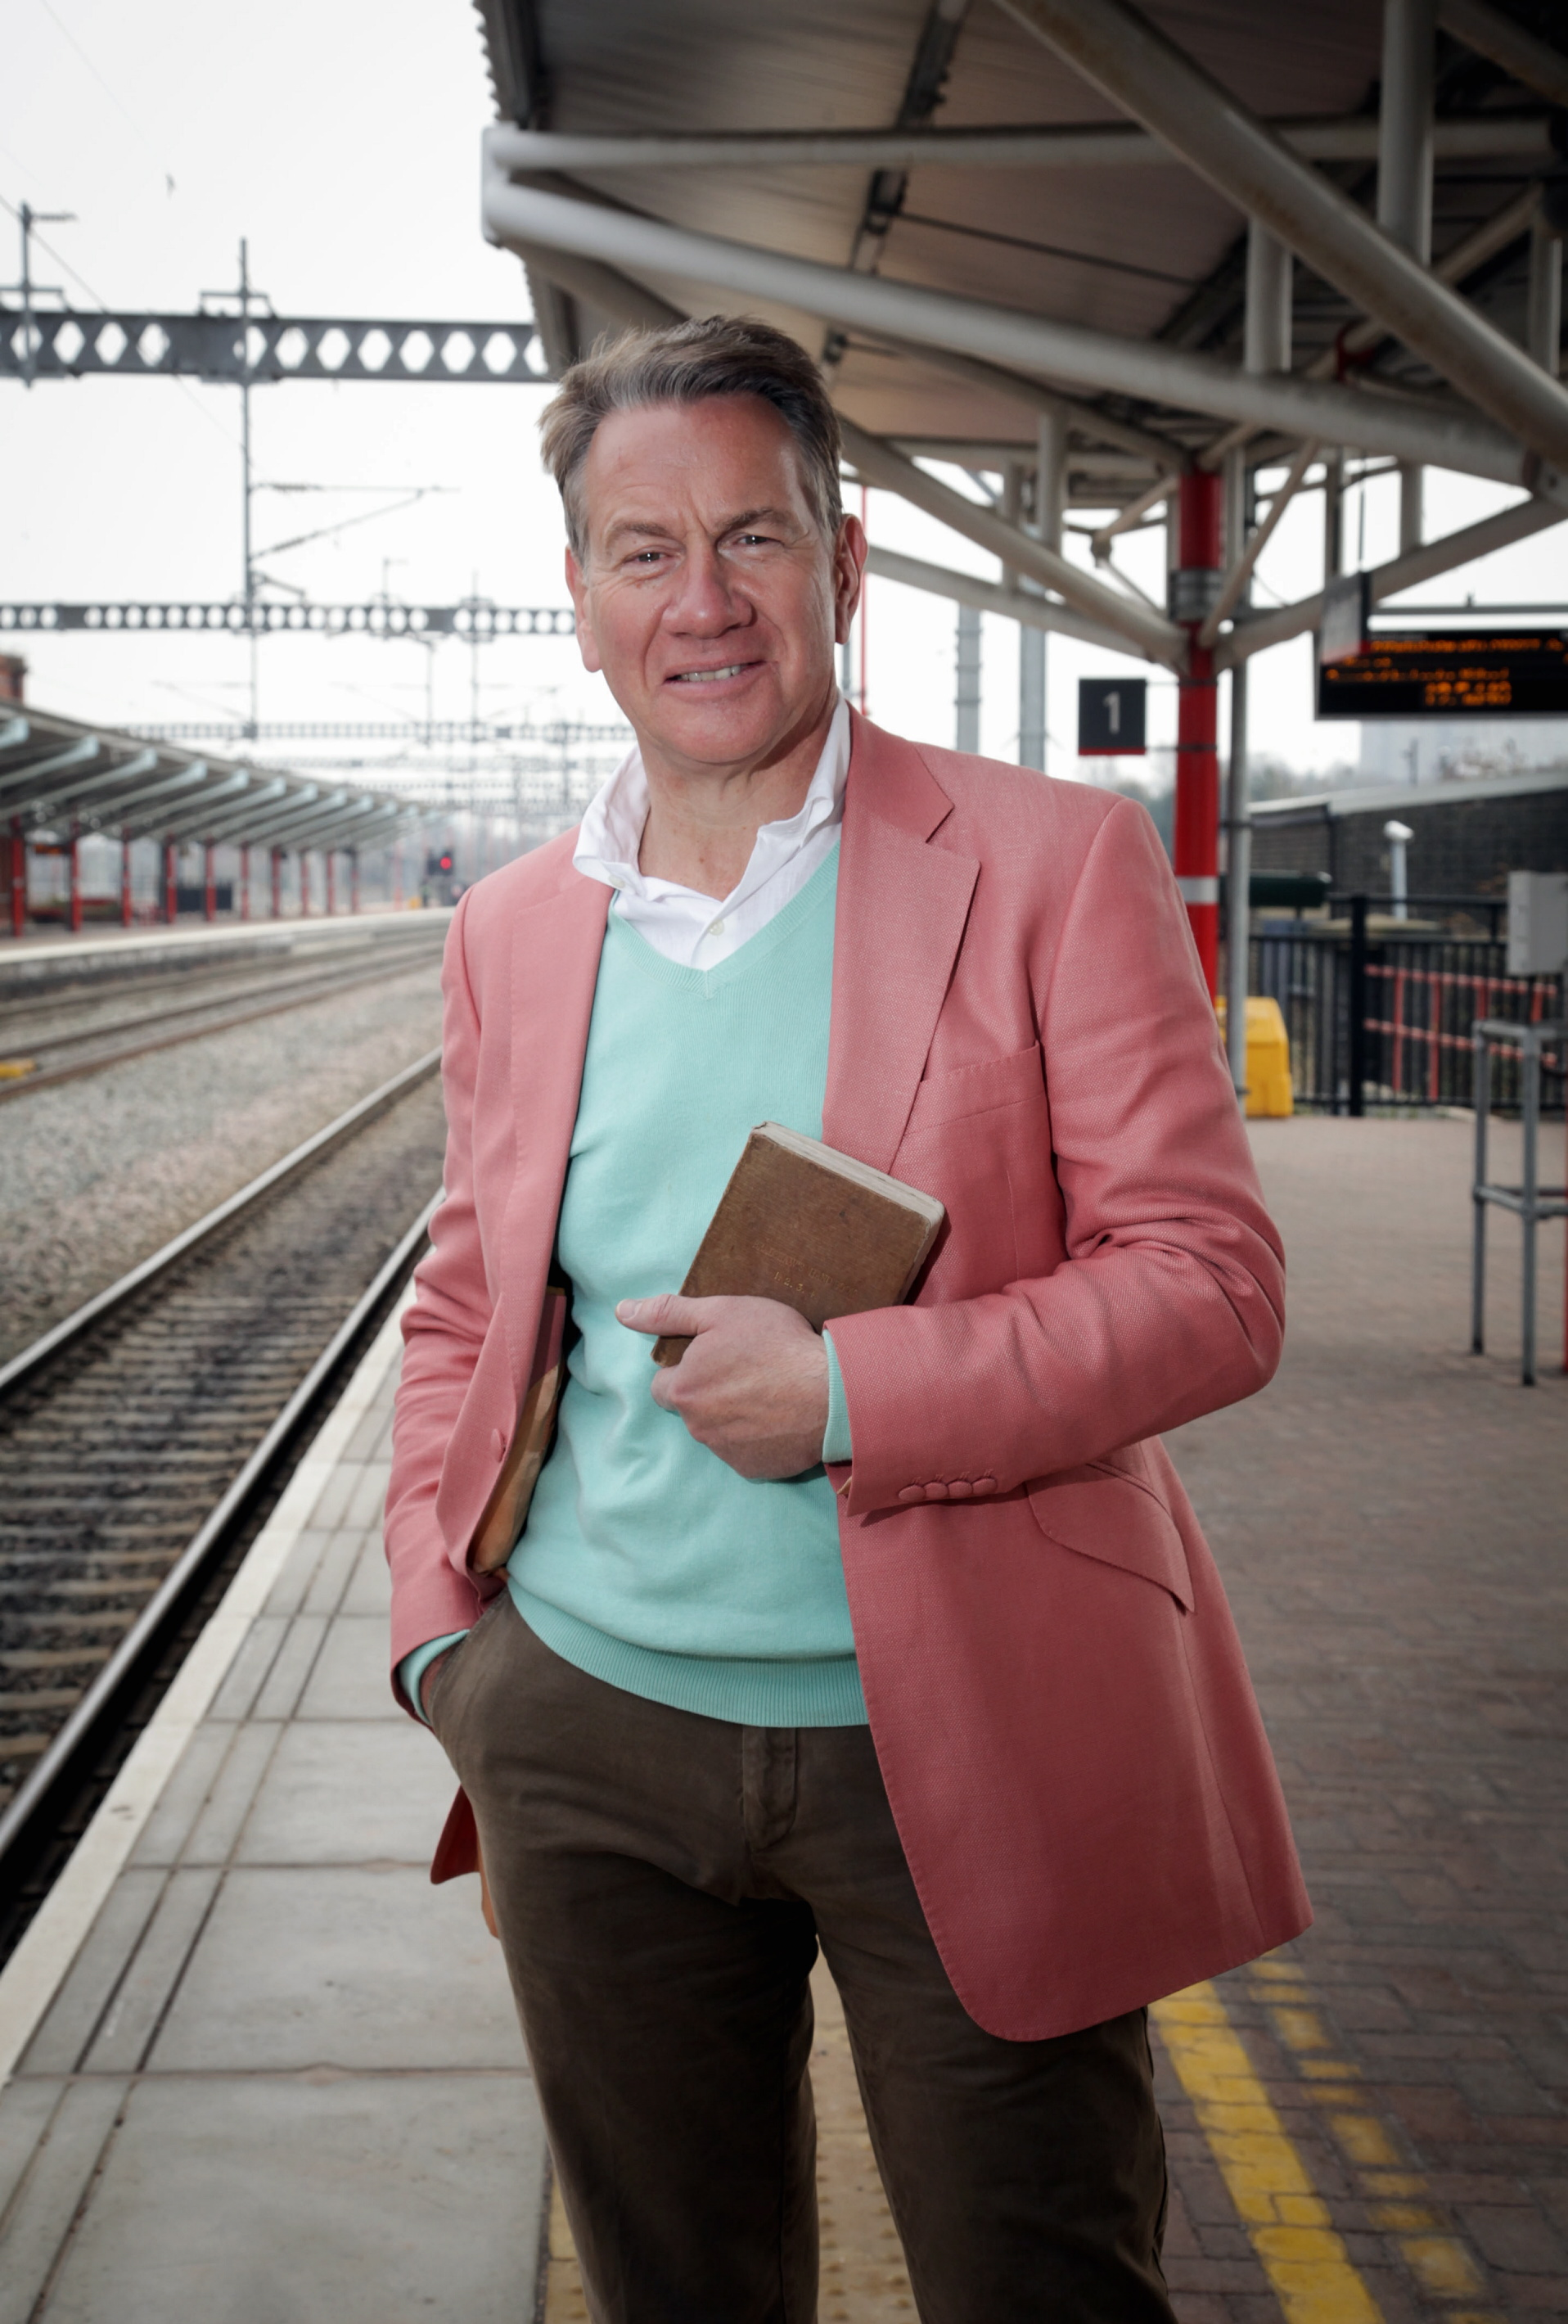 Michael Portillo at Keighley railway station during f